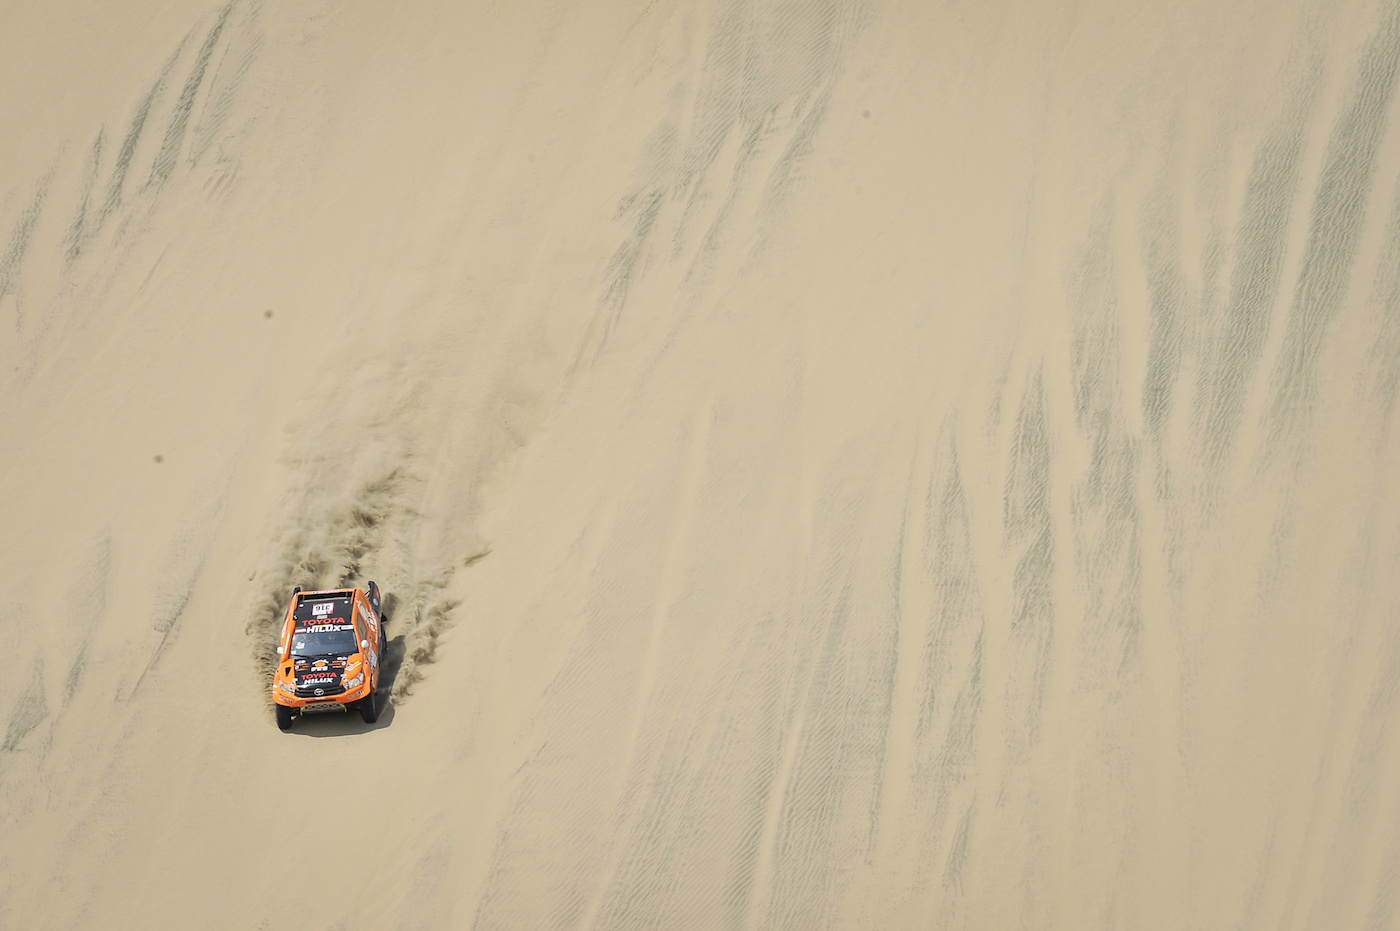 316 CHABOT RONAN (FRA) Legende, PILLOT GILLES (FRA) Legende, TOYOTA Hilux, auto, car, action during the Dakar 2018, Stage 1 Lima to Pisco, Peru, on january 6 - Photo DPPI